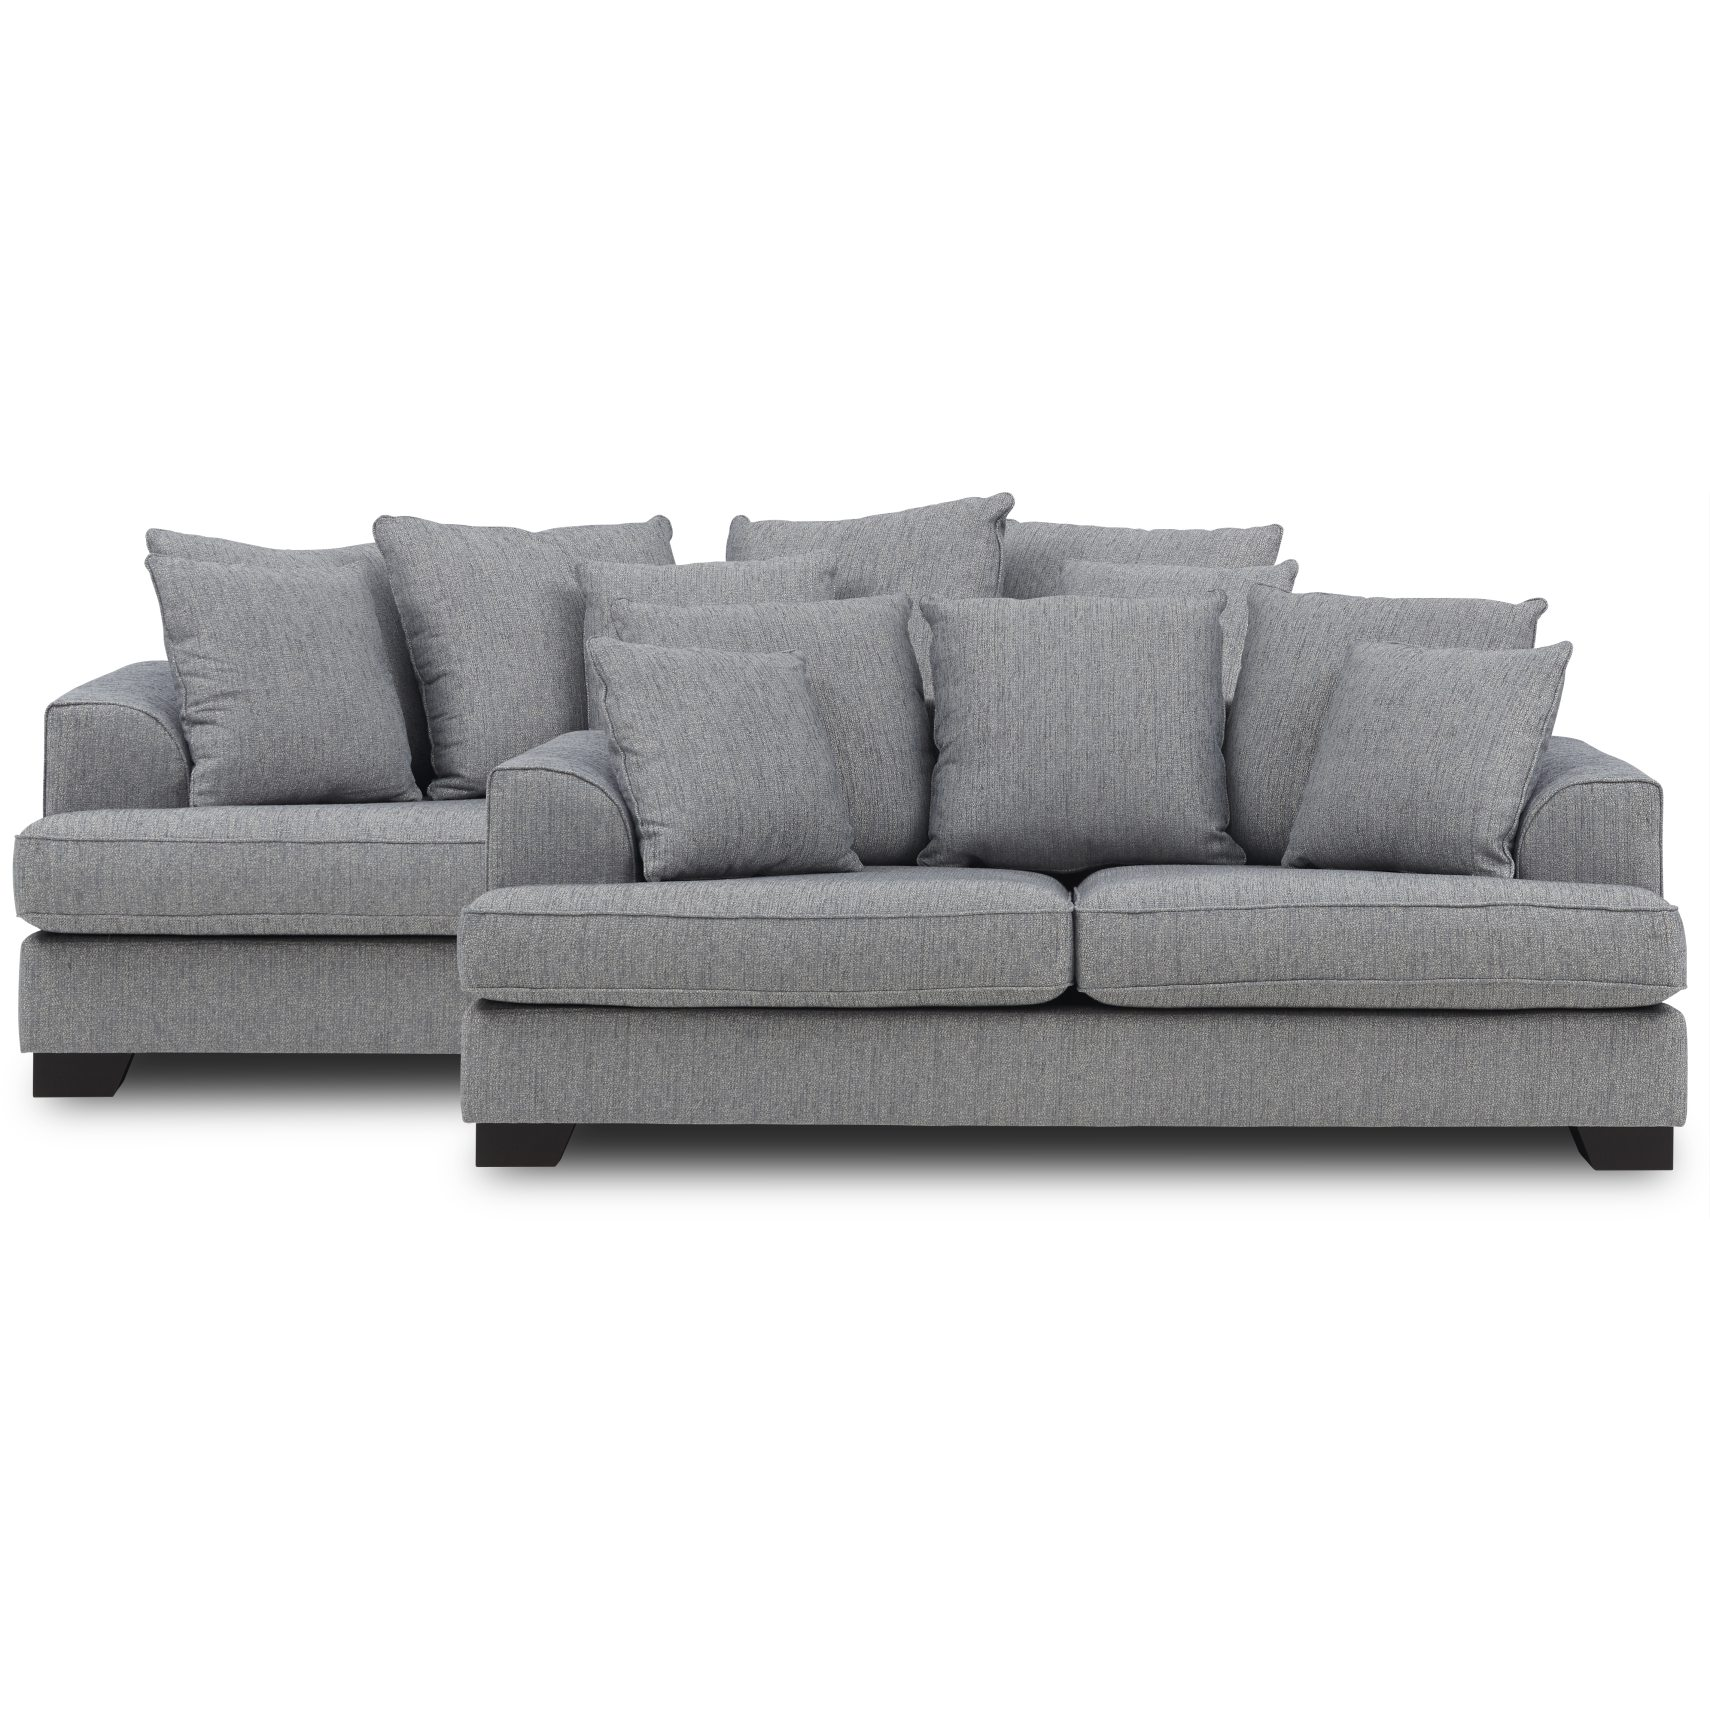 Kingston 3 pers. m/2 sæder Sofa